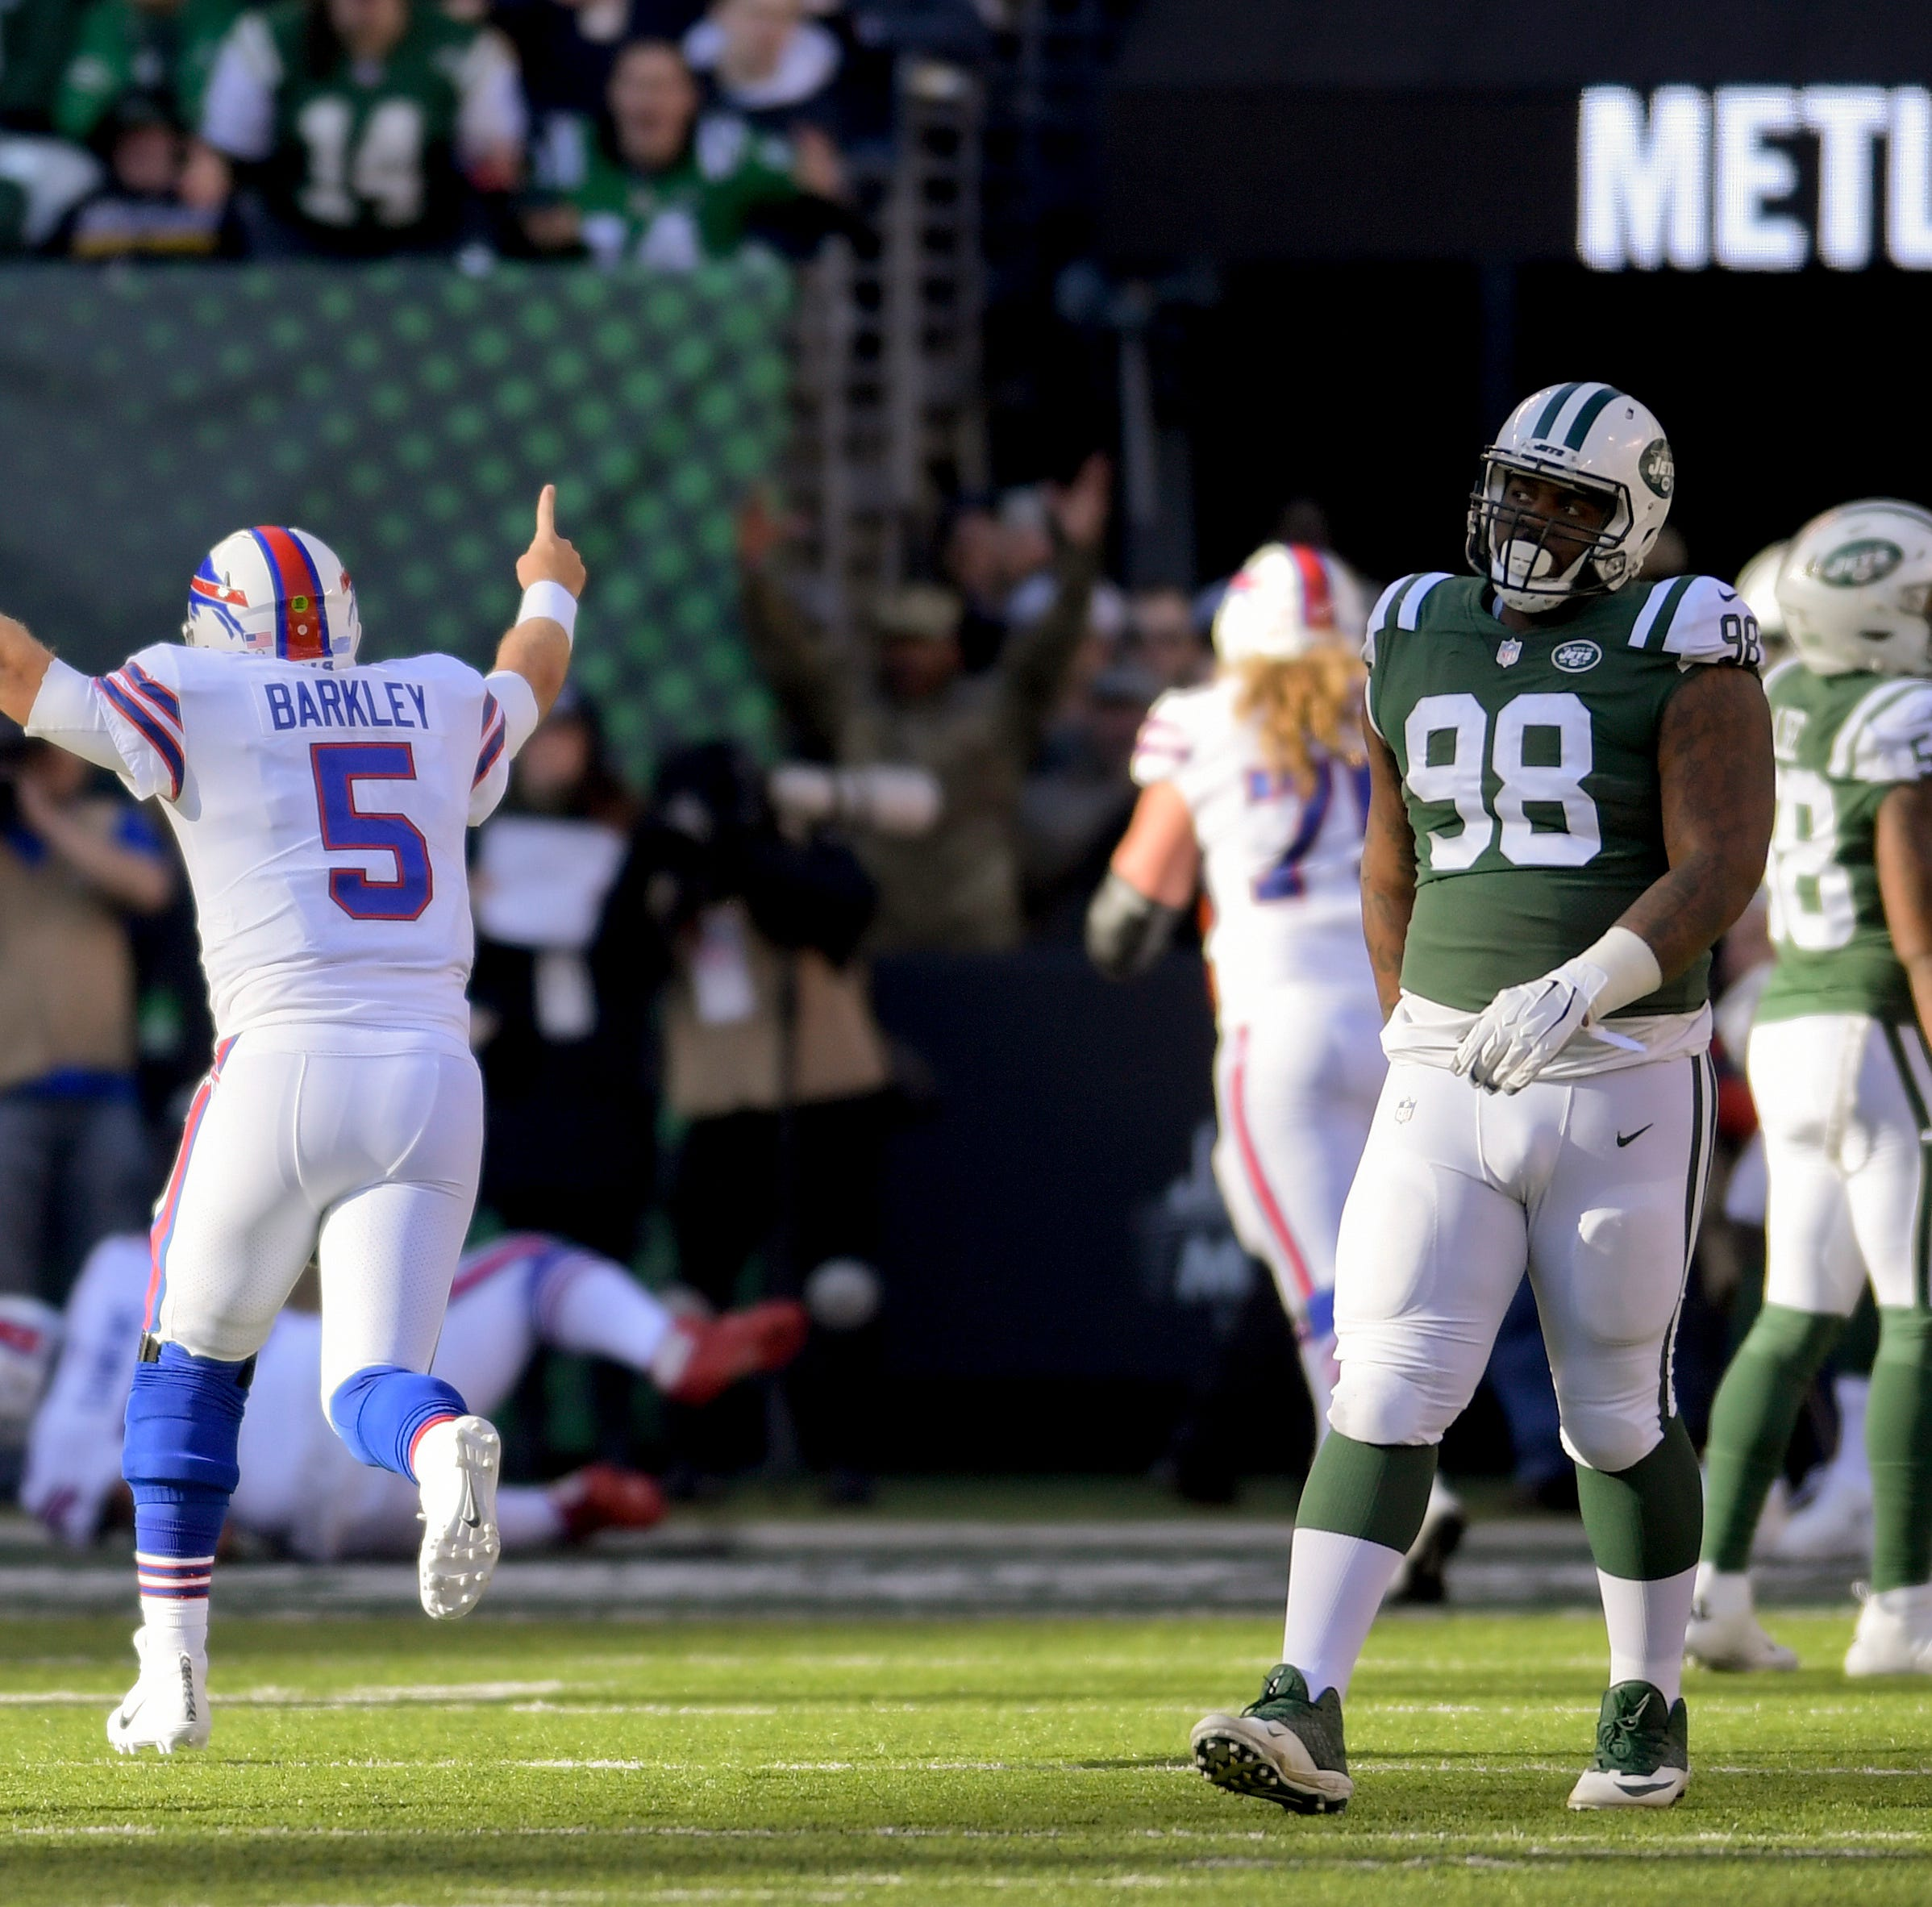 Bills can do no wrong and Barkley shines at quarterback in 41-10 victory over Jets